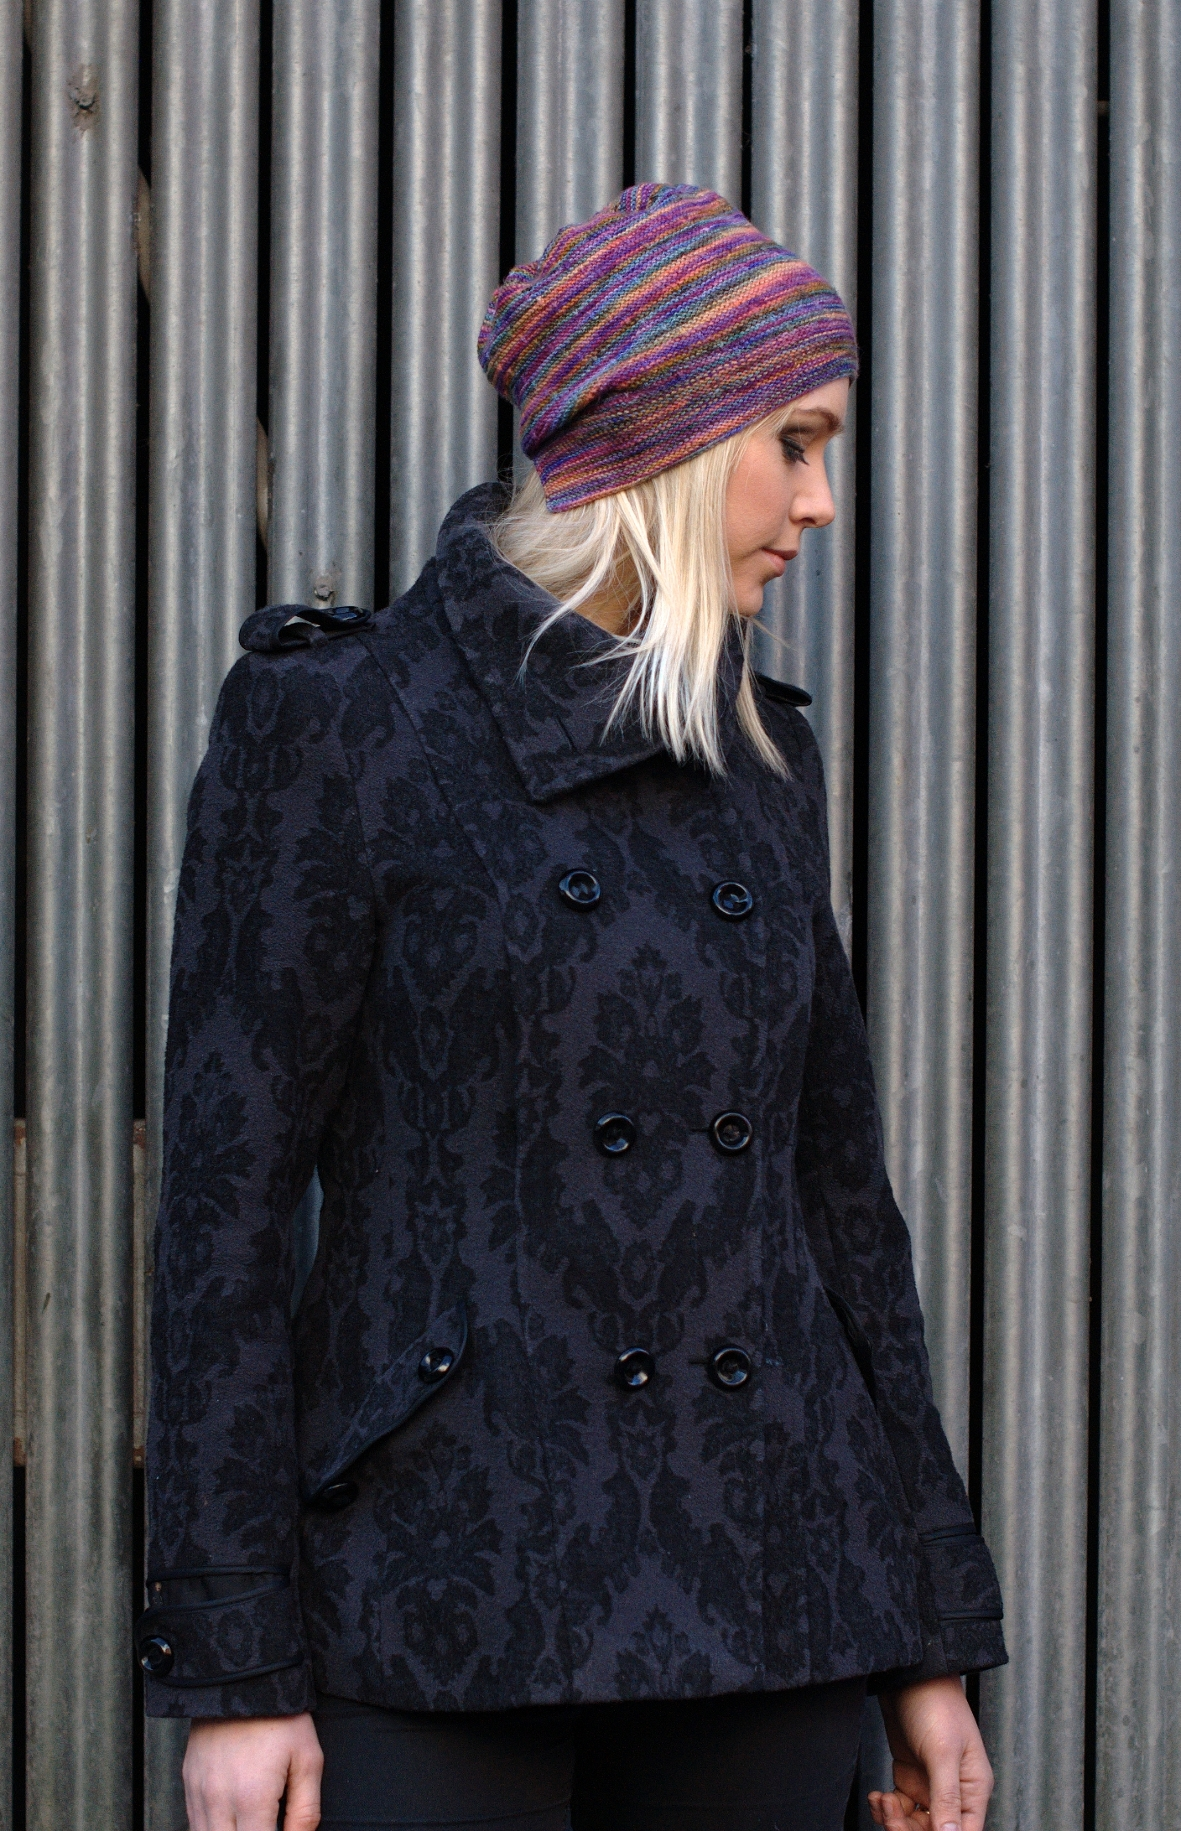 Risalire Hat knitting pattern for hand painted yarns